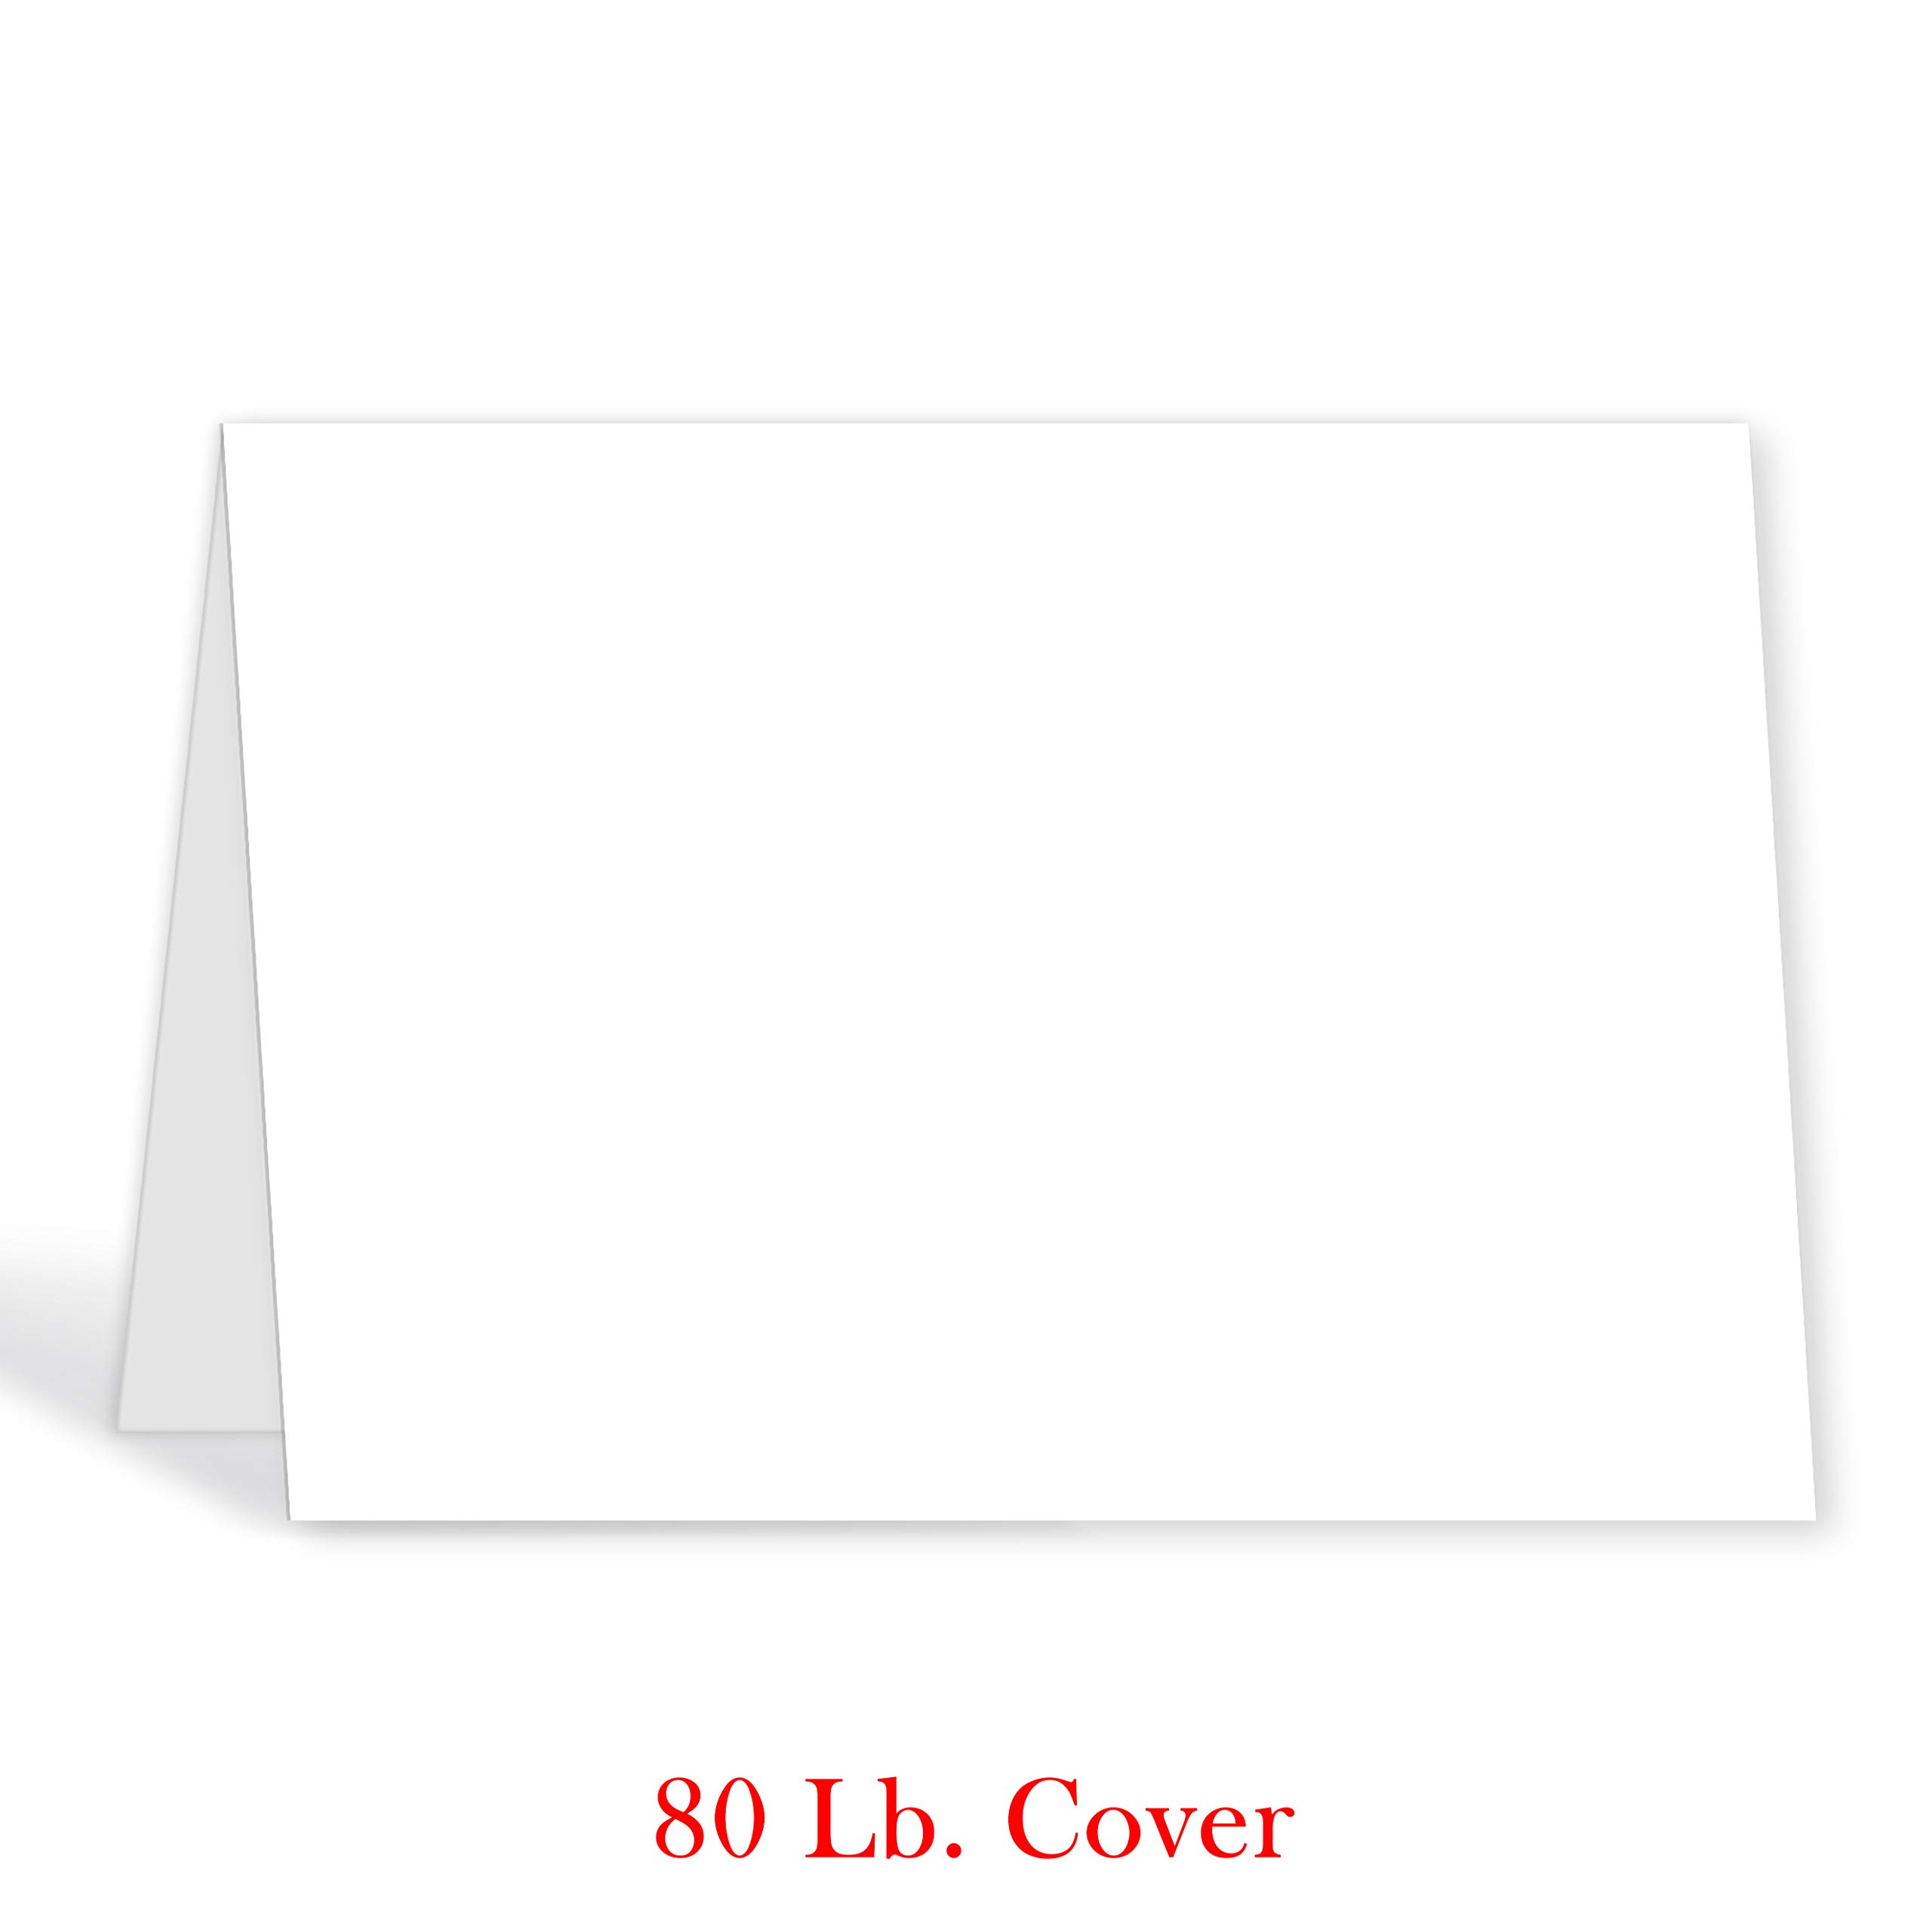 Greeting Cards - 5x7 Inches Heavyweight Blank White Card Paper- Half-Fold Design - Perfect for Birthday Invitations, Wedding, Holiday, Notes, Anniversary and All Occasions - Bulk Pack of 100 Cards